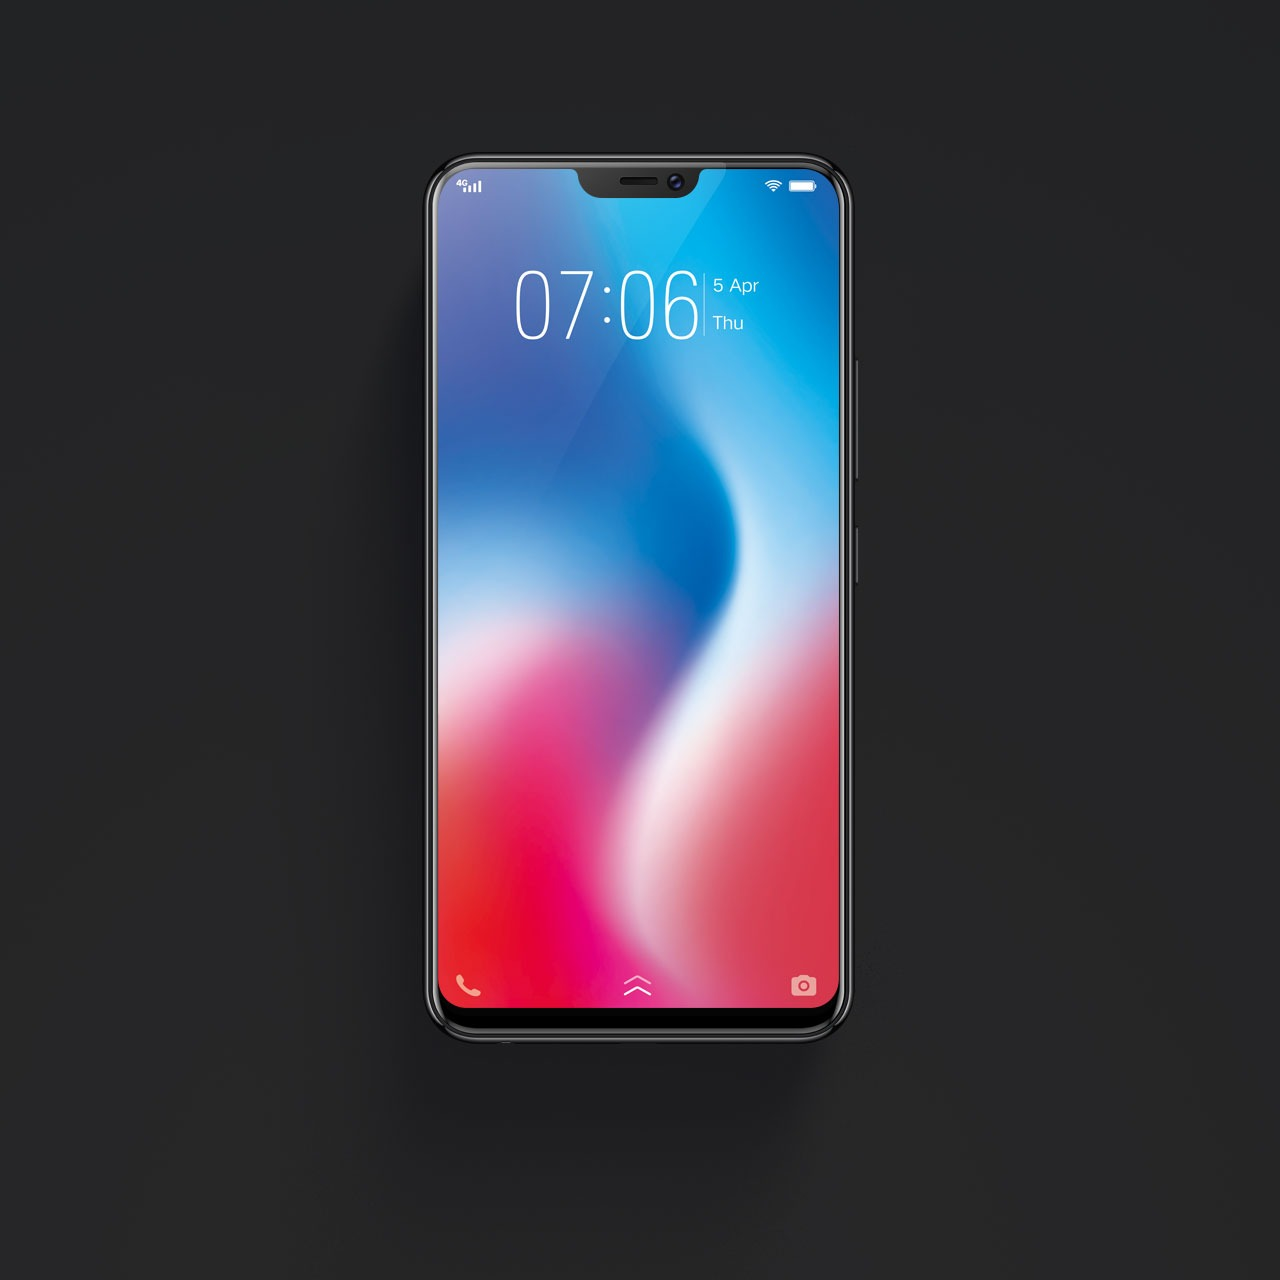 Vivo V9 Launched in India with 19:9 'Full View' Aspect Ratio